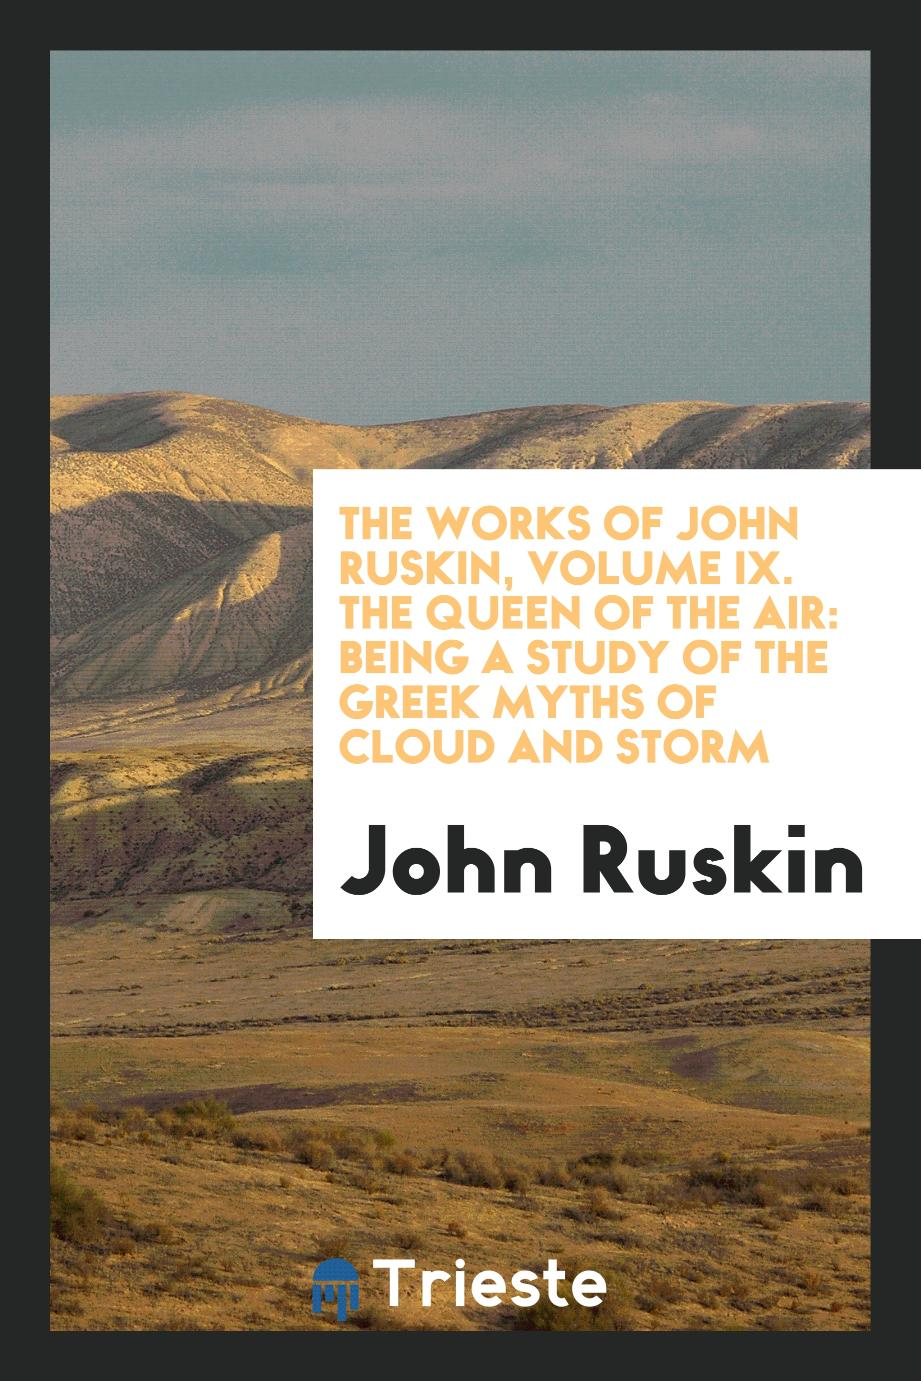 The Works of John Ruskin, Volume IX. The Queen of the Air: Being a Study of the Greek Myths of Cloud and Storm